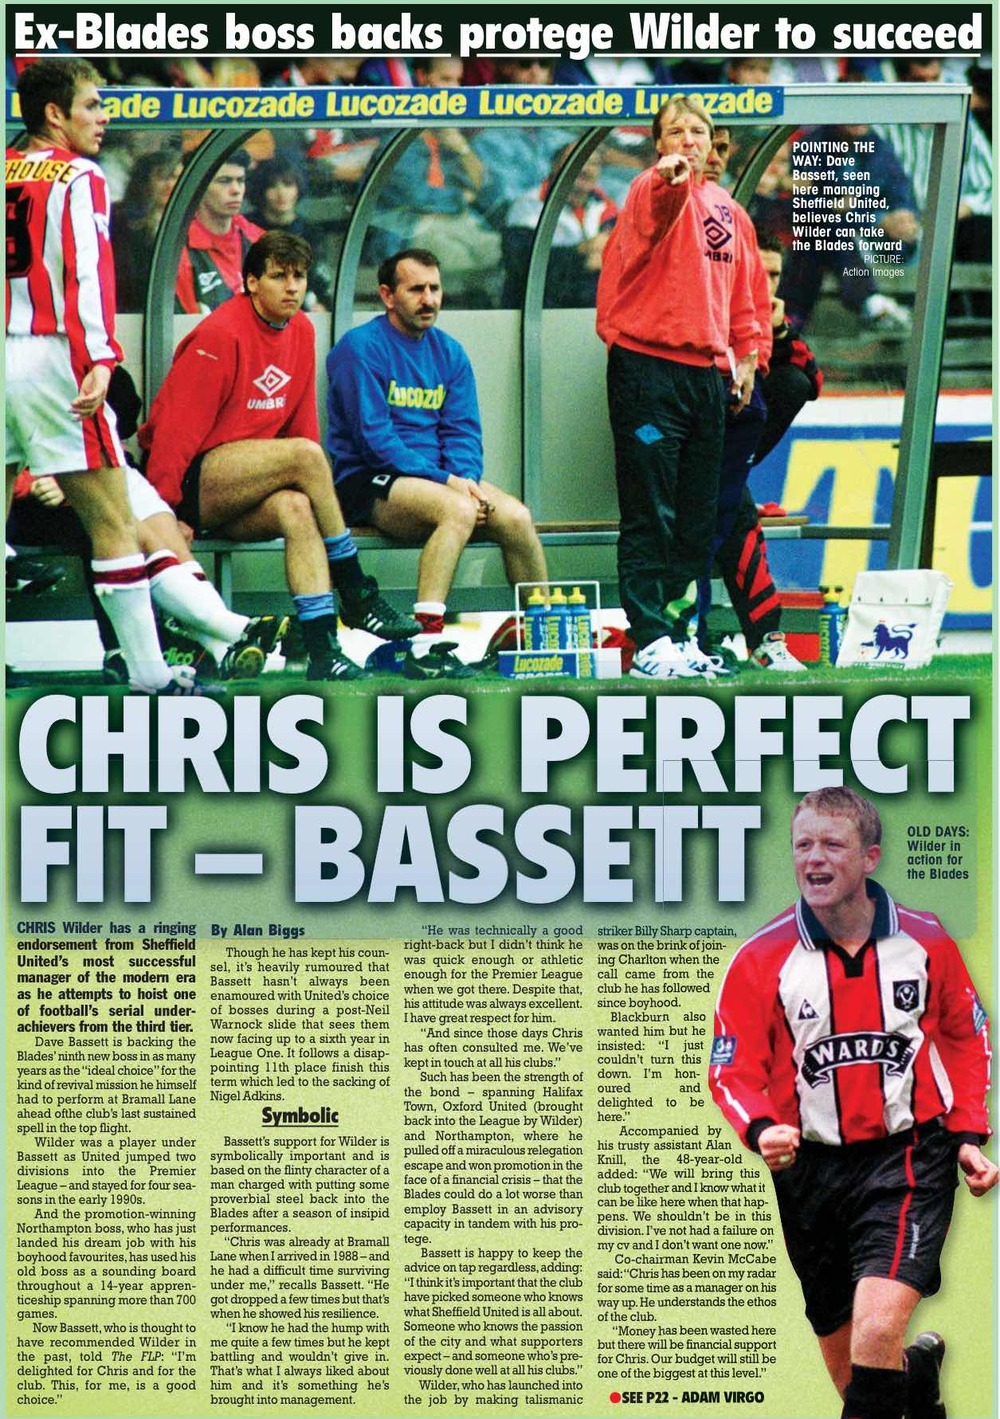 HIGH PRAISE:  FORMER SHEFFIELD UNITED BOSS DAVE BASSETT LENDS HIS APPROVAL to the latest managerial appointment at bramall lane IN   THE FOOTBALL LEAGUE PAPER